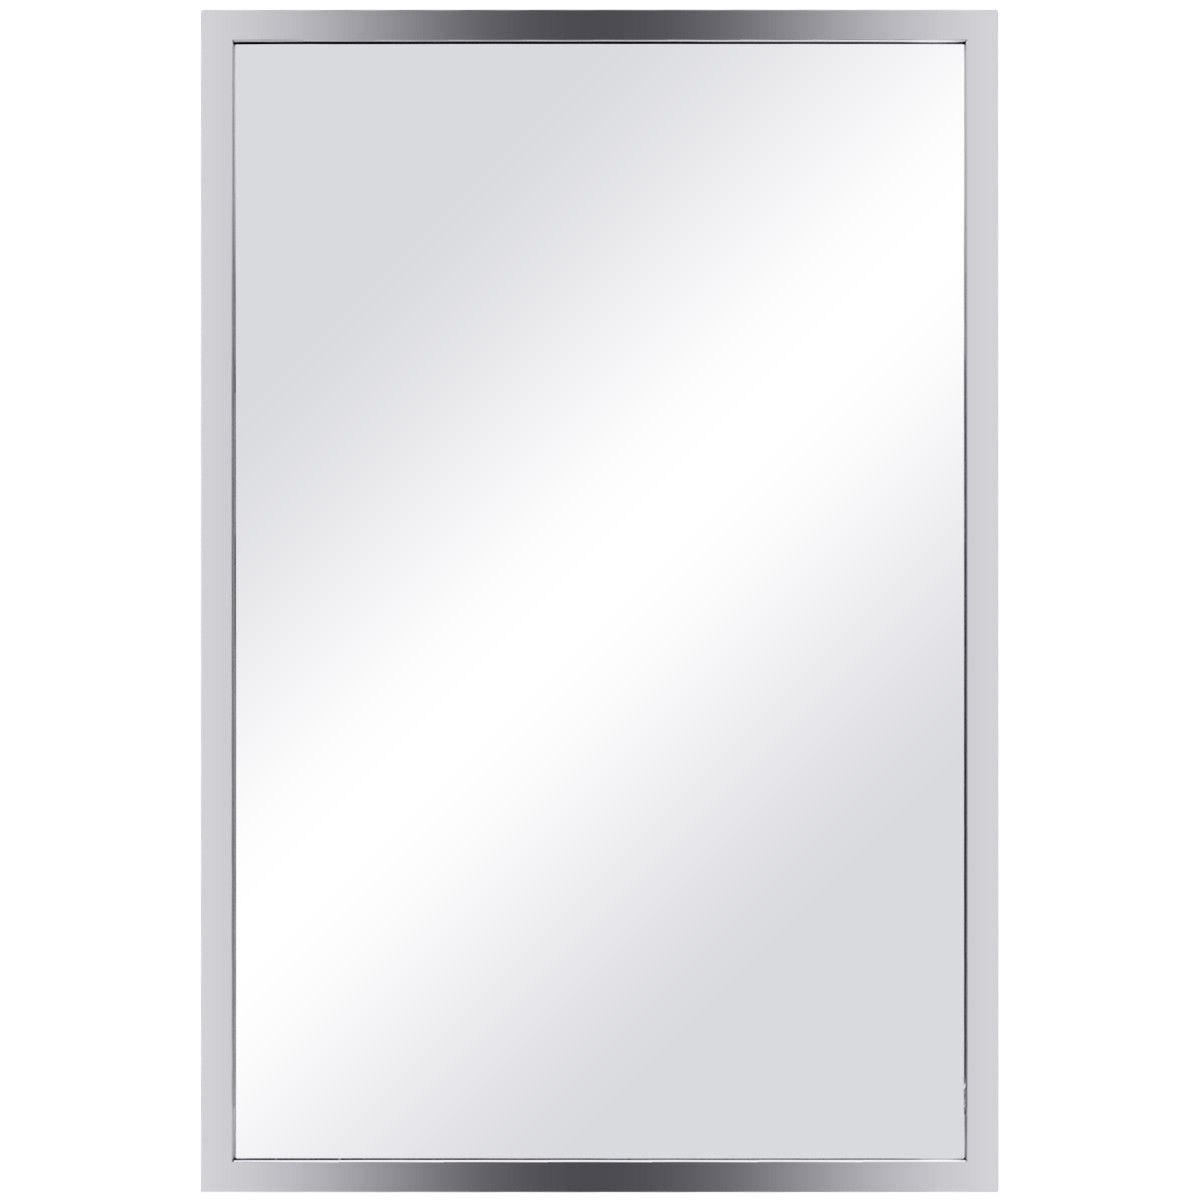 24 X 36 Wall Mirrors For Well Known Costway 24'' X 36'' Large Rectangular Wall Mirror Stainless Steel Frame Floating Glass (View 5 of 20)